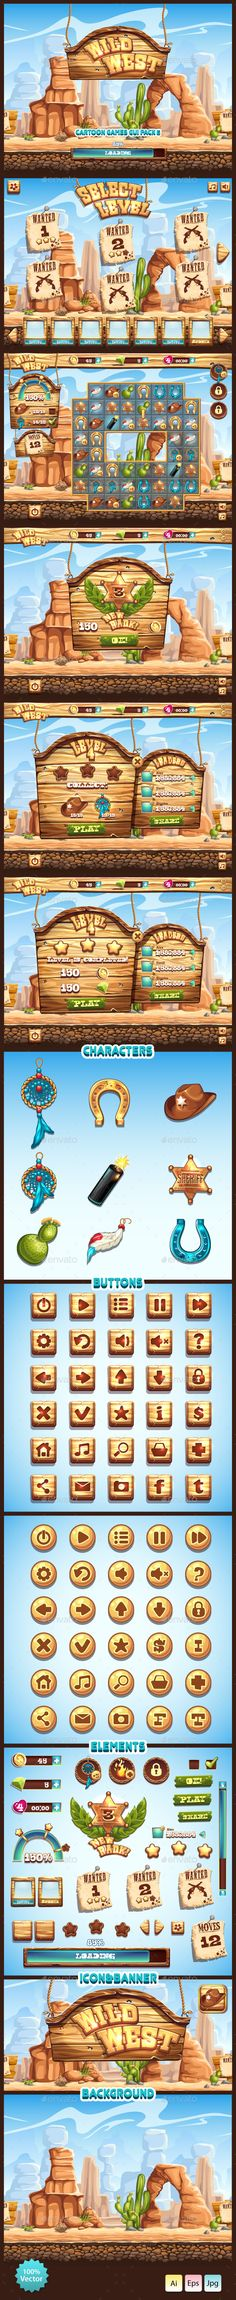 Wild West GUI - User Interfaces #Game #Assets | Download http://graphicriver.net/item/wild-west-gui/11298188?ref=sinzo